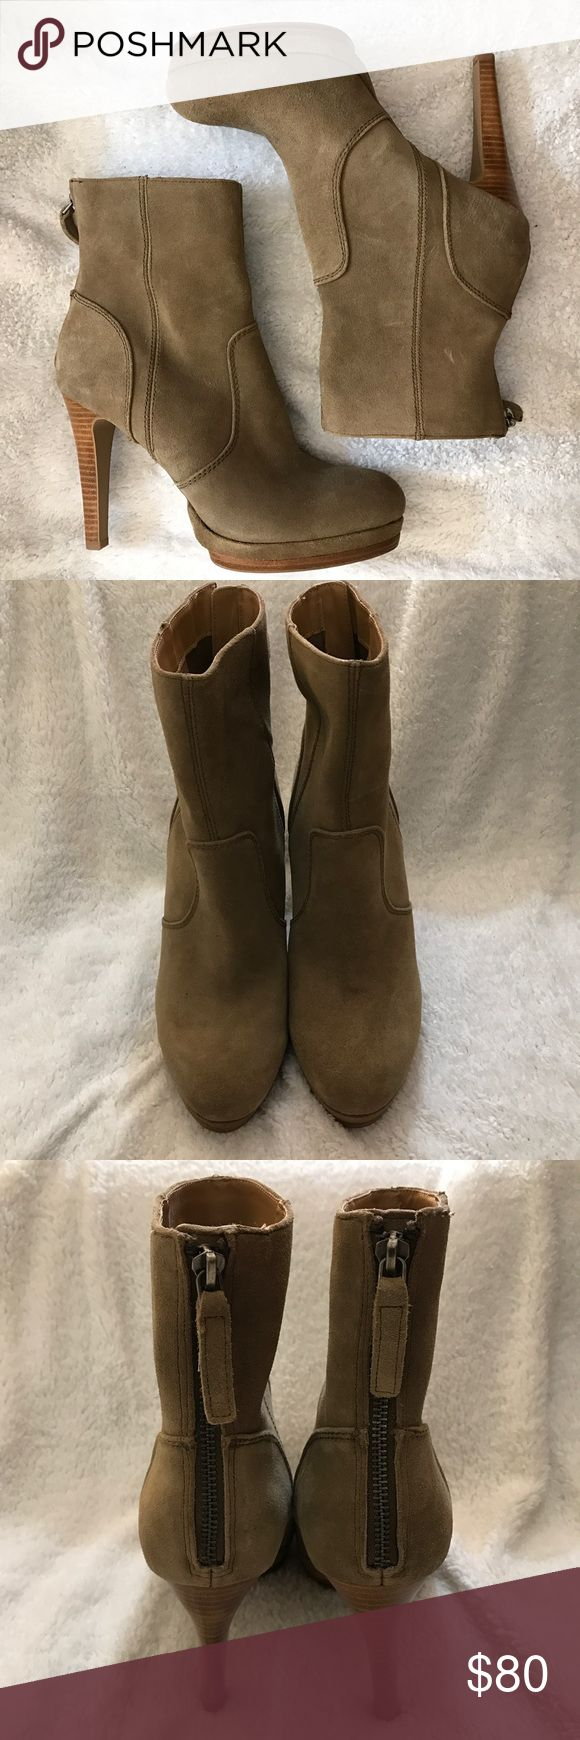 🆕 Nine West Women's Aldren Suede Boot 9M 🆕 Nine West Women's Aldren Camel Suede Back Zip Platform Heel Boots. NWOT, never worn.  Size: 9M Color: Camel / Tan Heel: Approx 4.25 in Nine West Shoes Ankle Boots & Booties